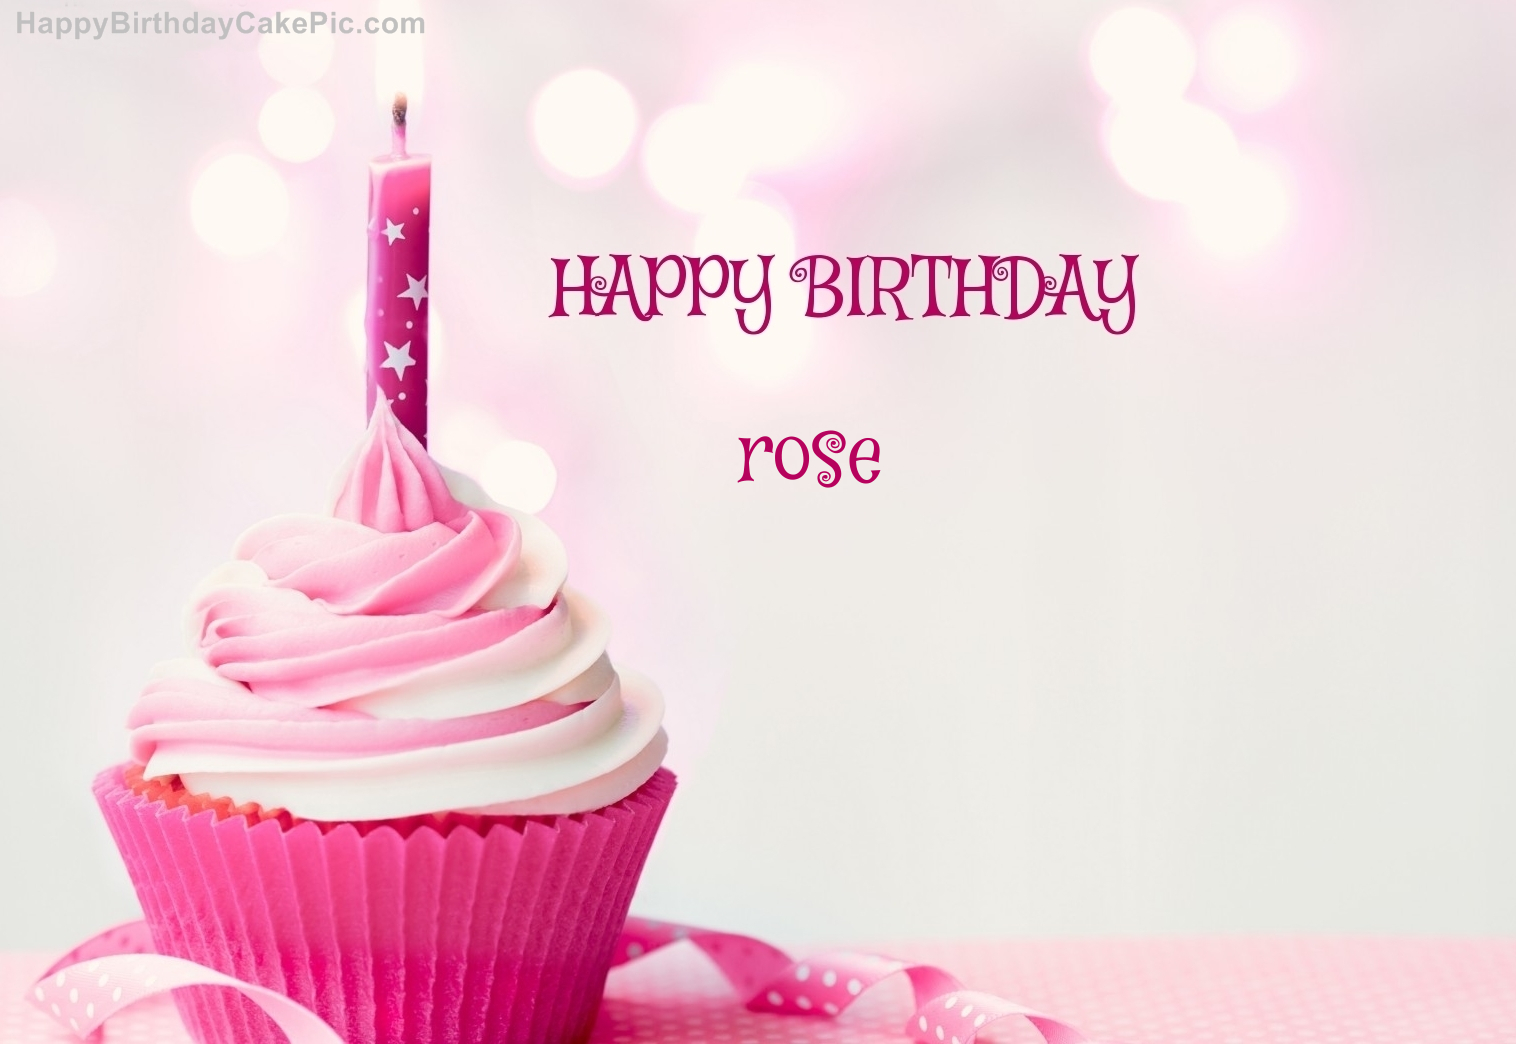 Happy Birthday Cupcake Candle Pink Cake For Rose